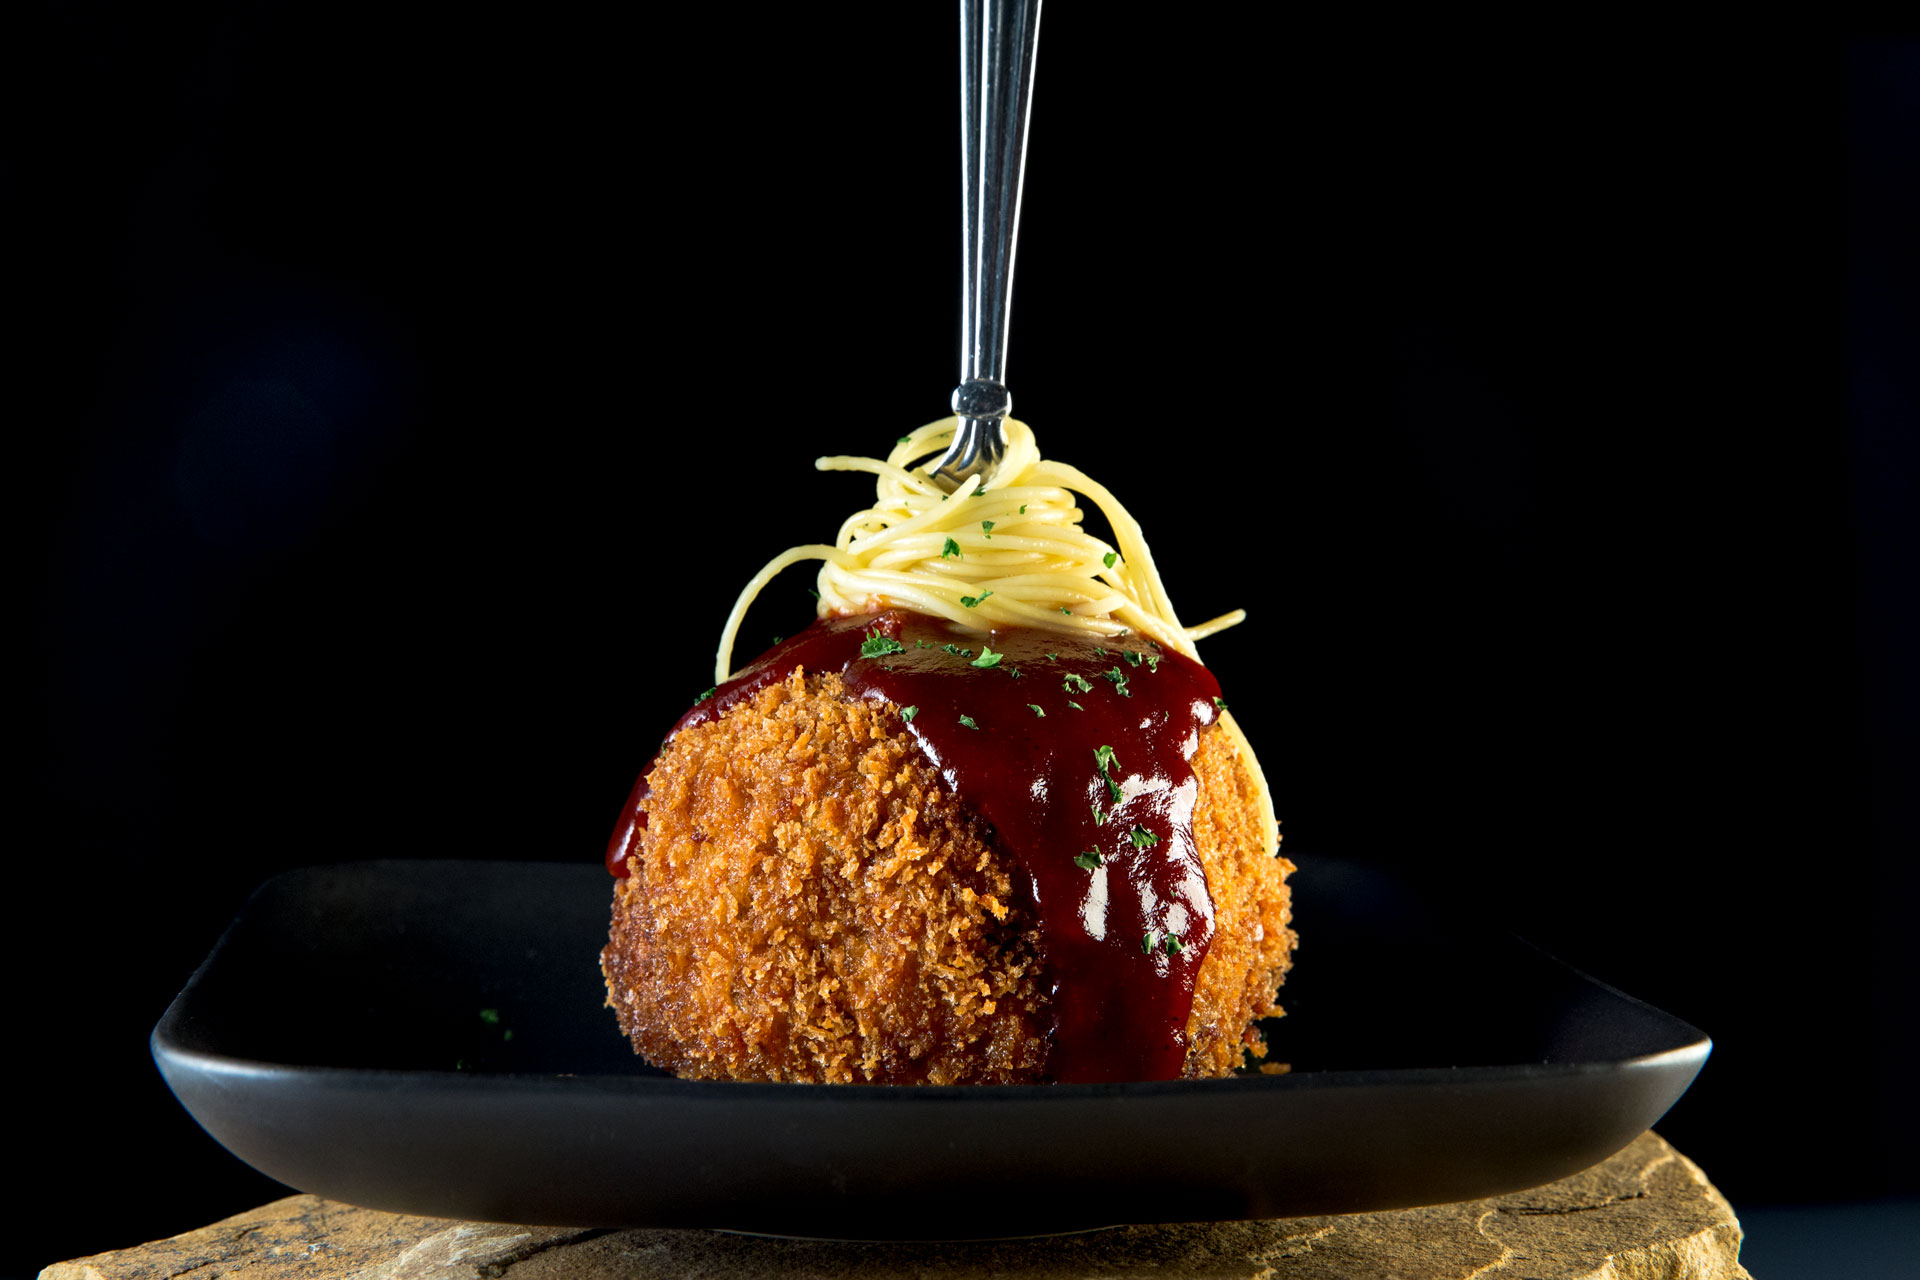 This softball-size meatball, made to resemble an Italian meatball impaled with a forkful of pasta, holds a secret filling. The Big One is actually a deep-fried meatball filled with a molten center of smoky pulled pork, two kinds of cheese and BBQ sauce!